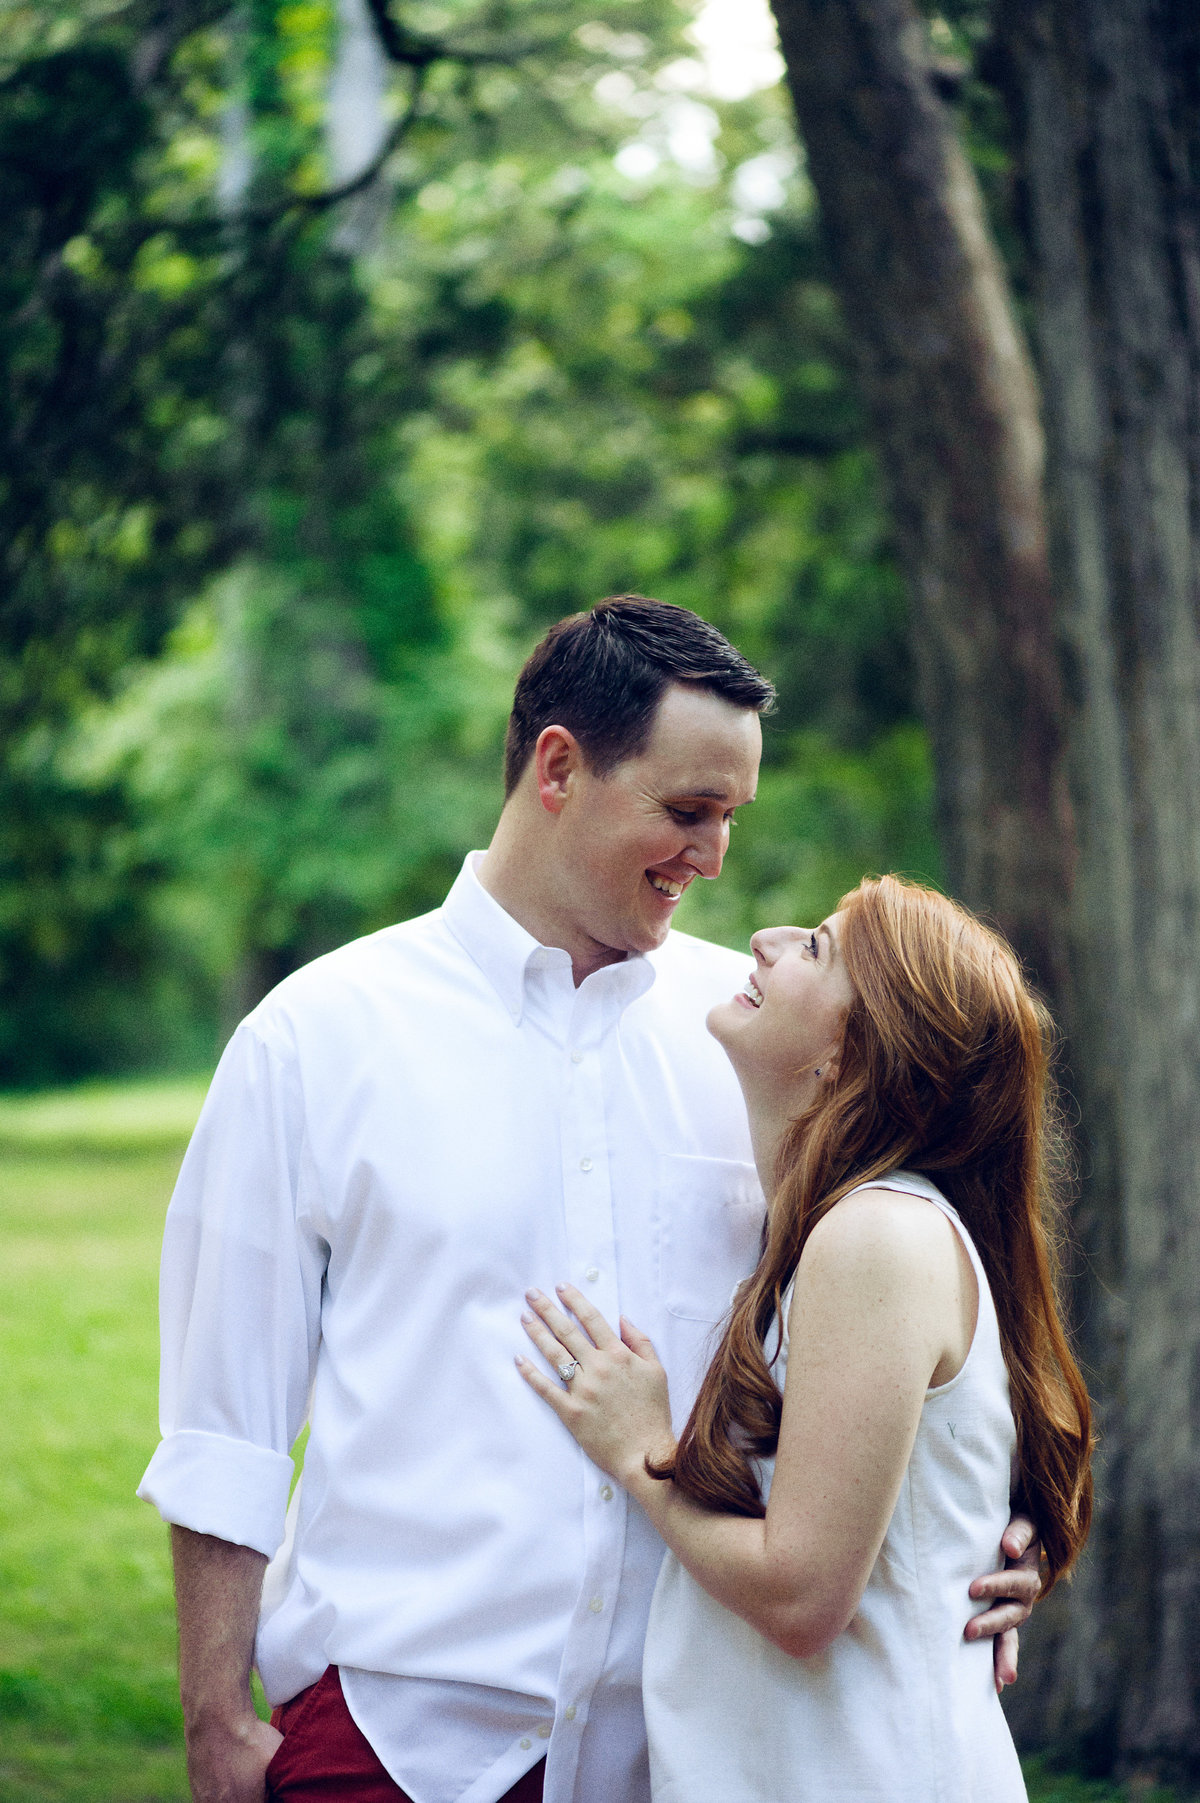 Shaw_Engagement-0035